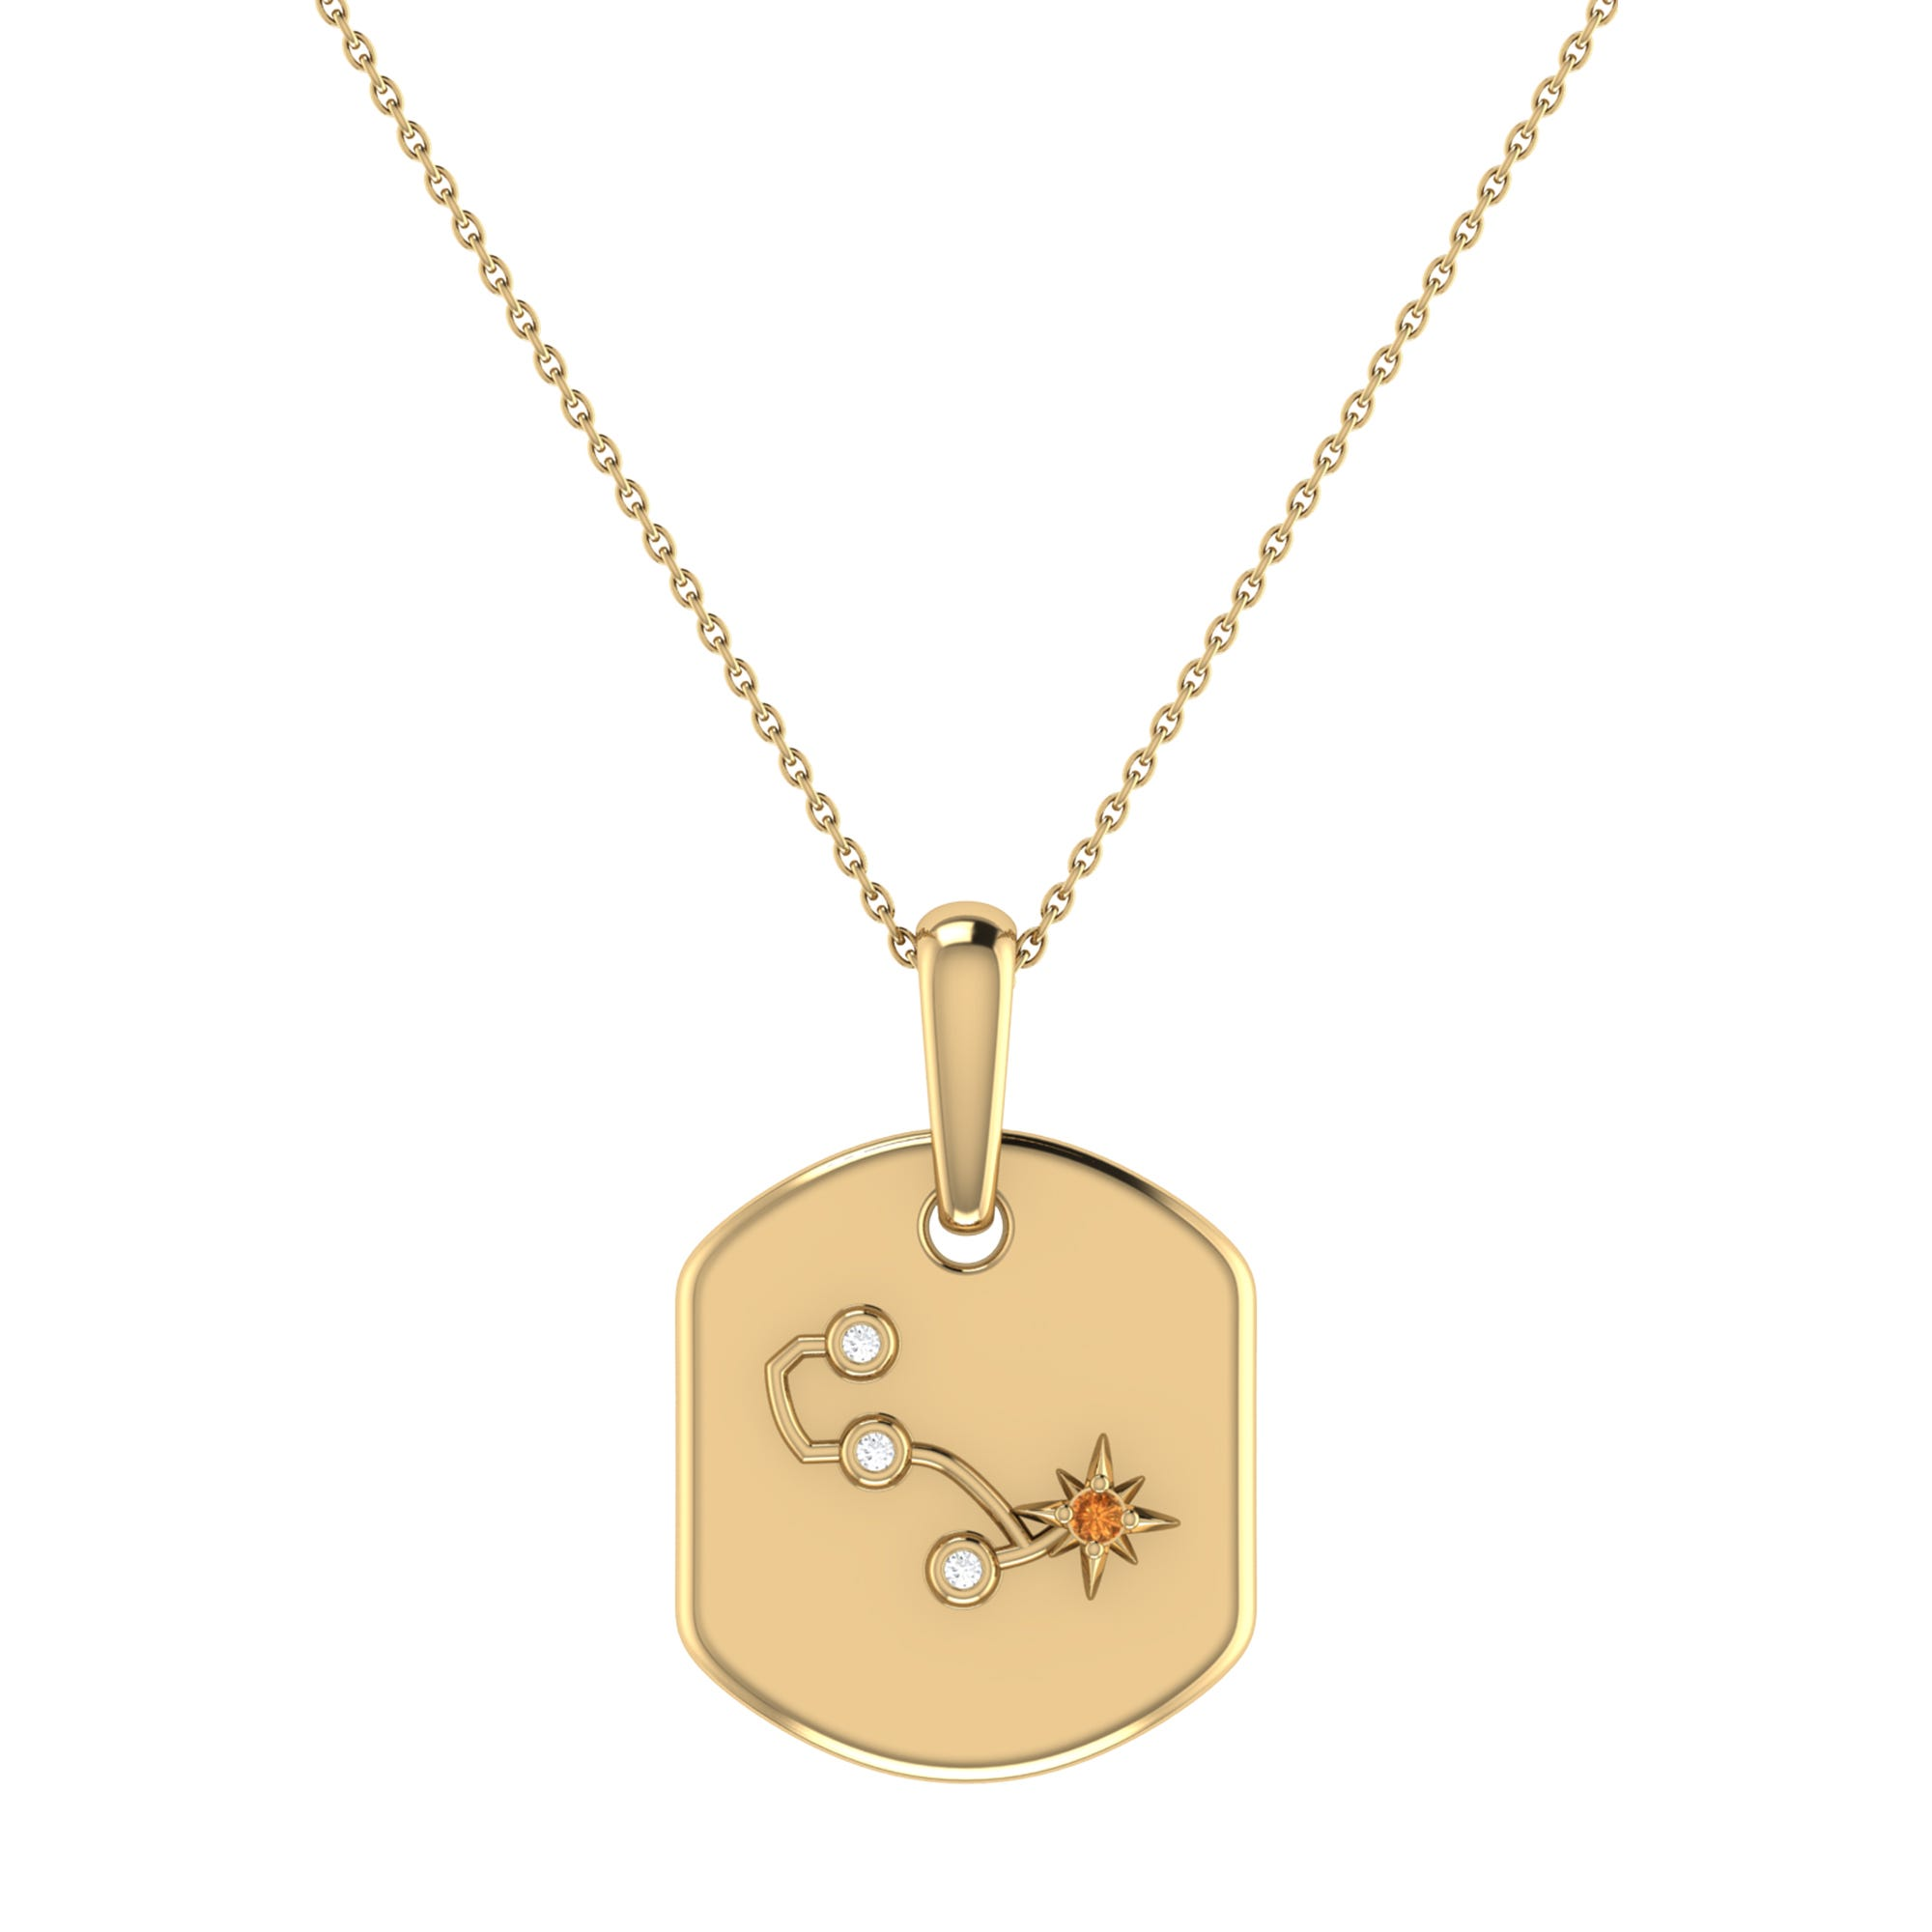 Diamond and Citrine Scorpio Constellation Tag Necklace in 14k Yellow Gold Plated Sterling Silver